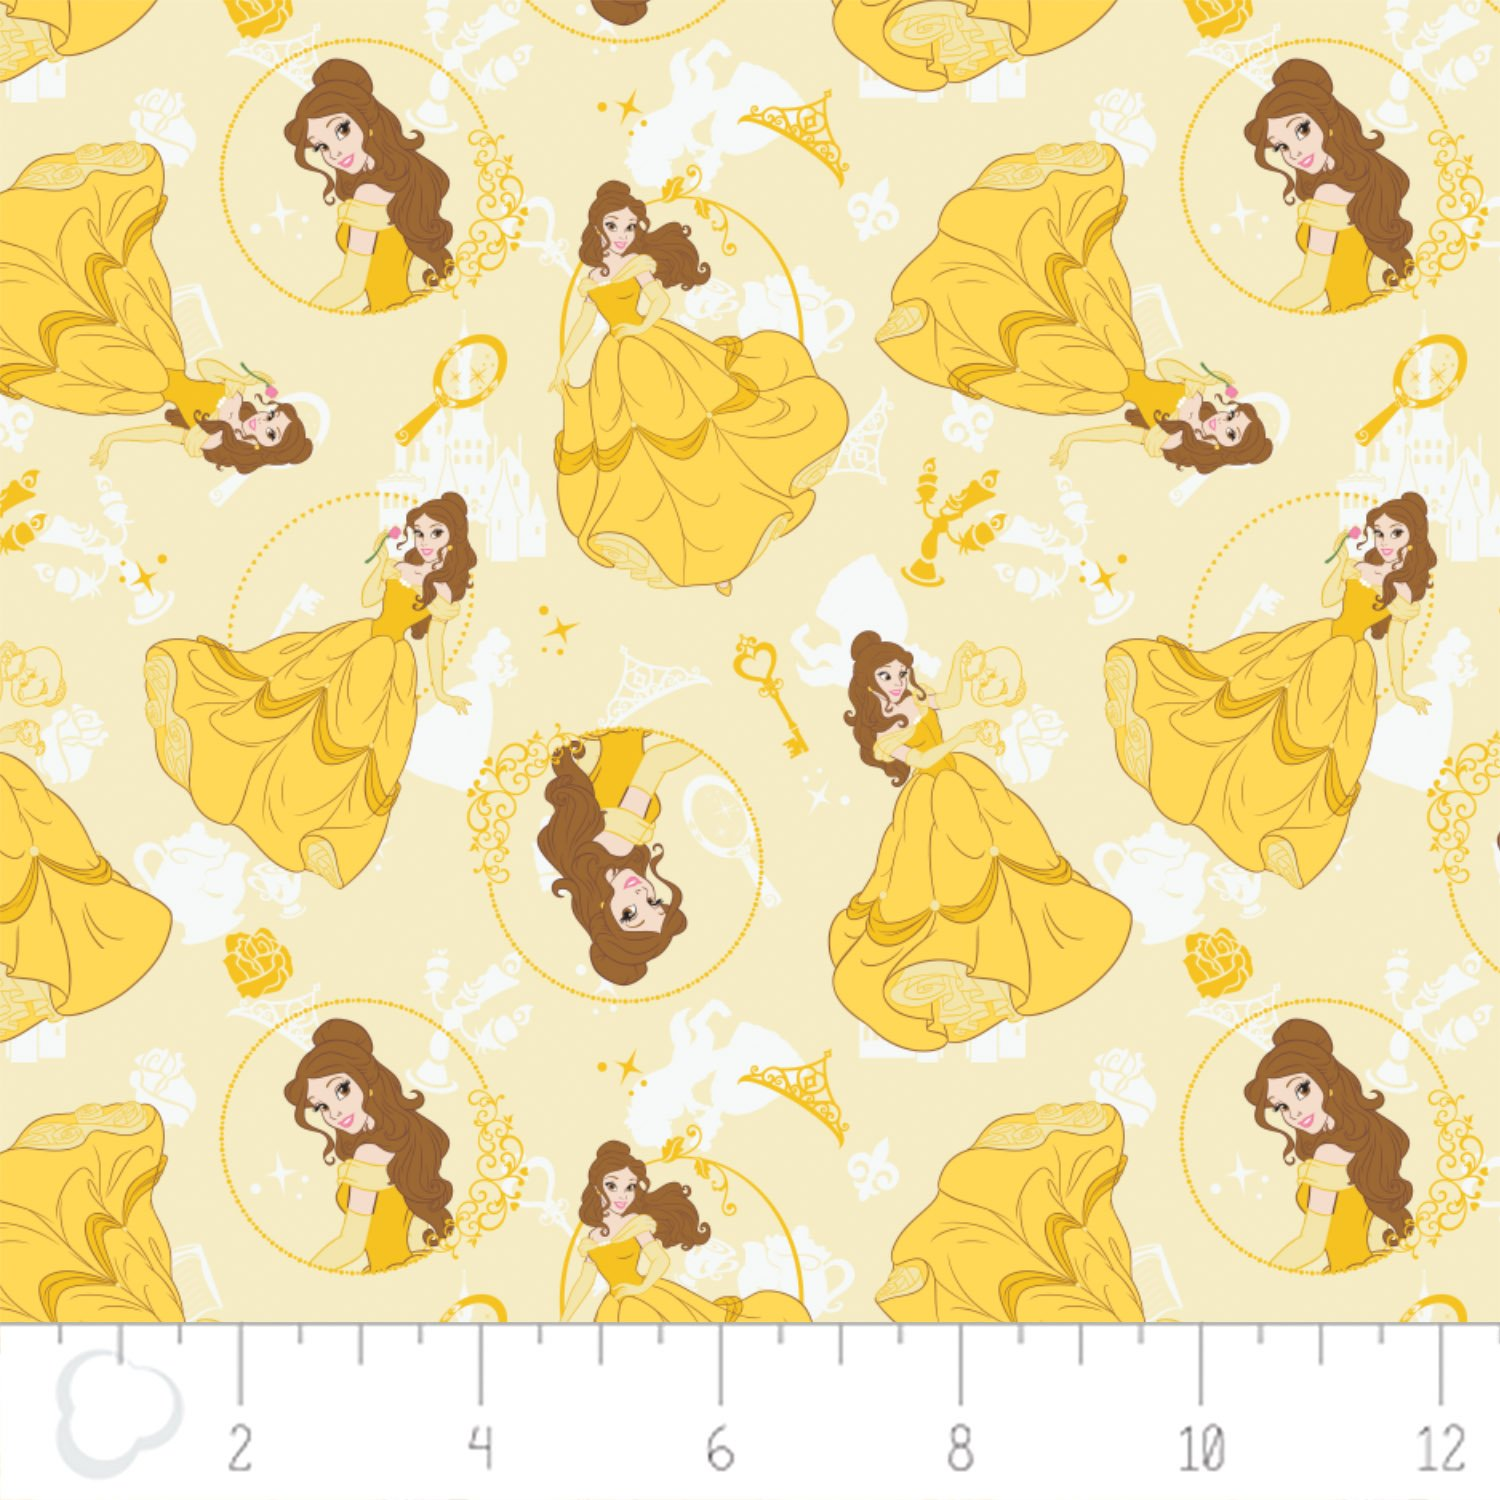 Disney Princesses Belle Beauty and the Beast